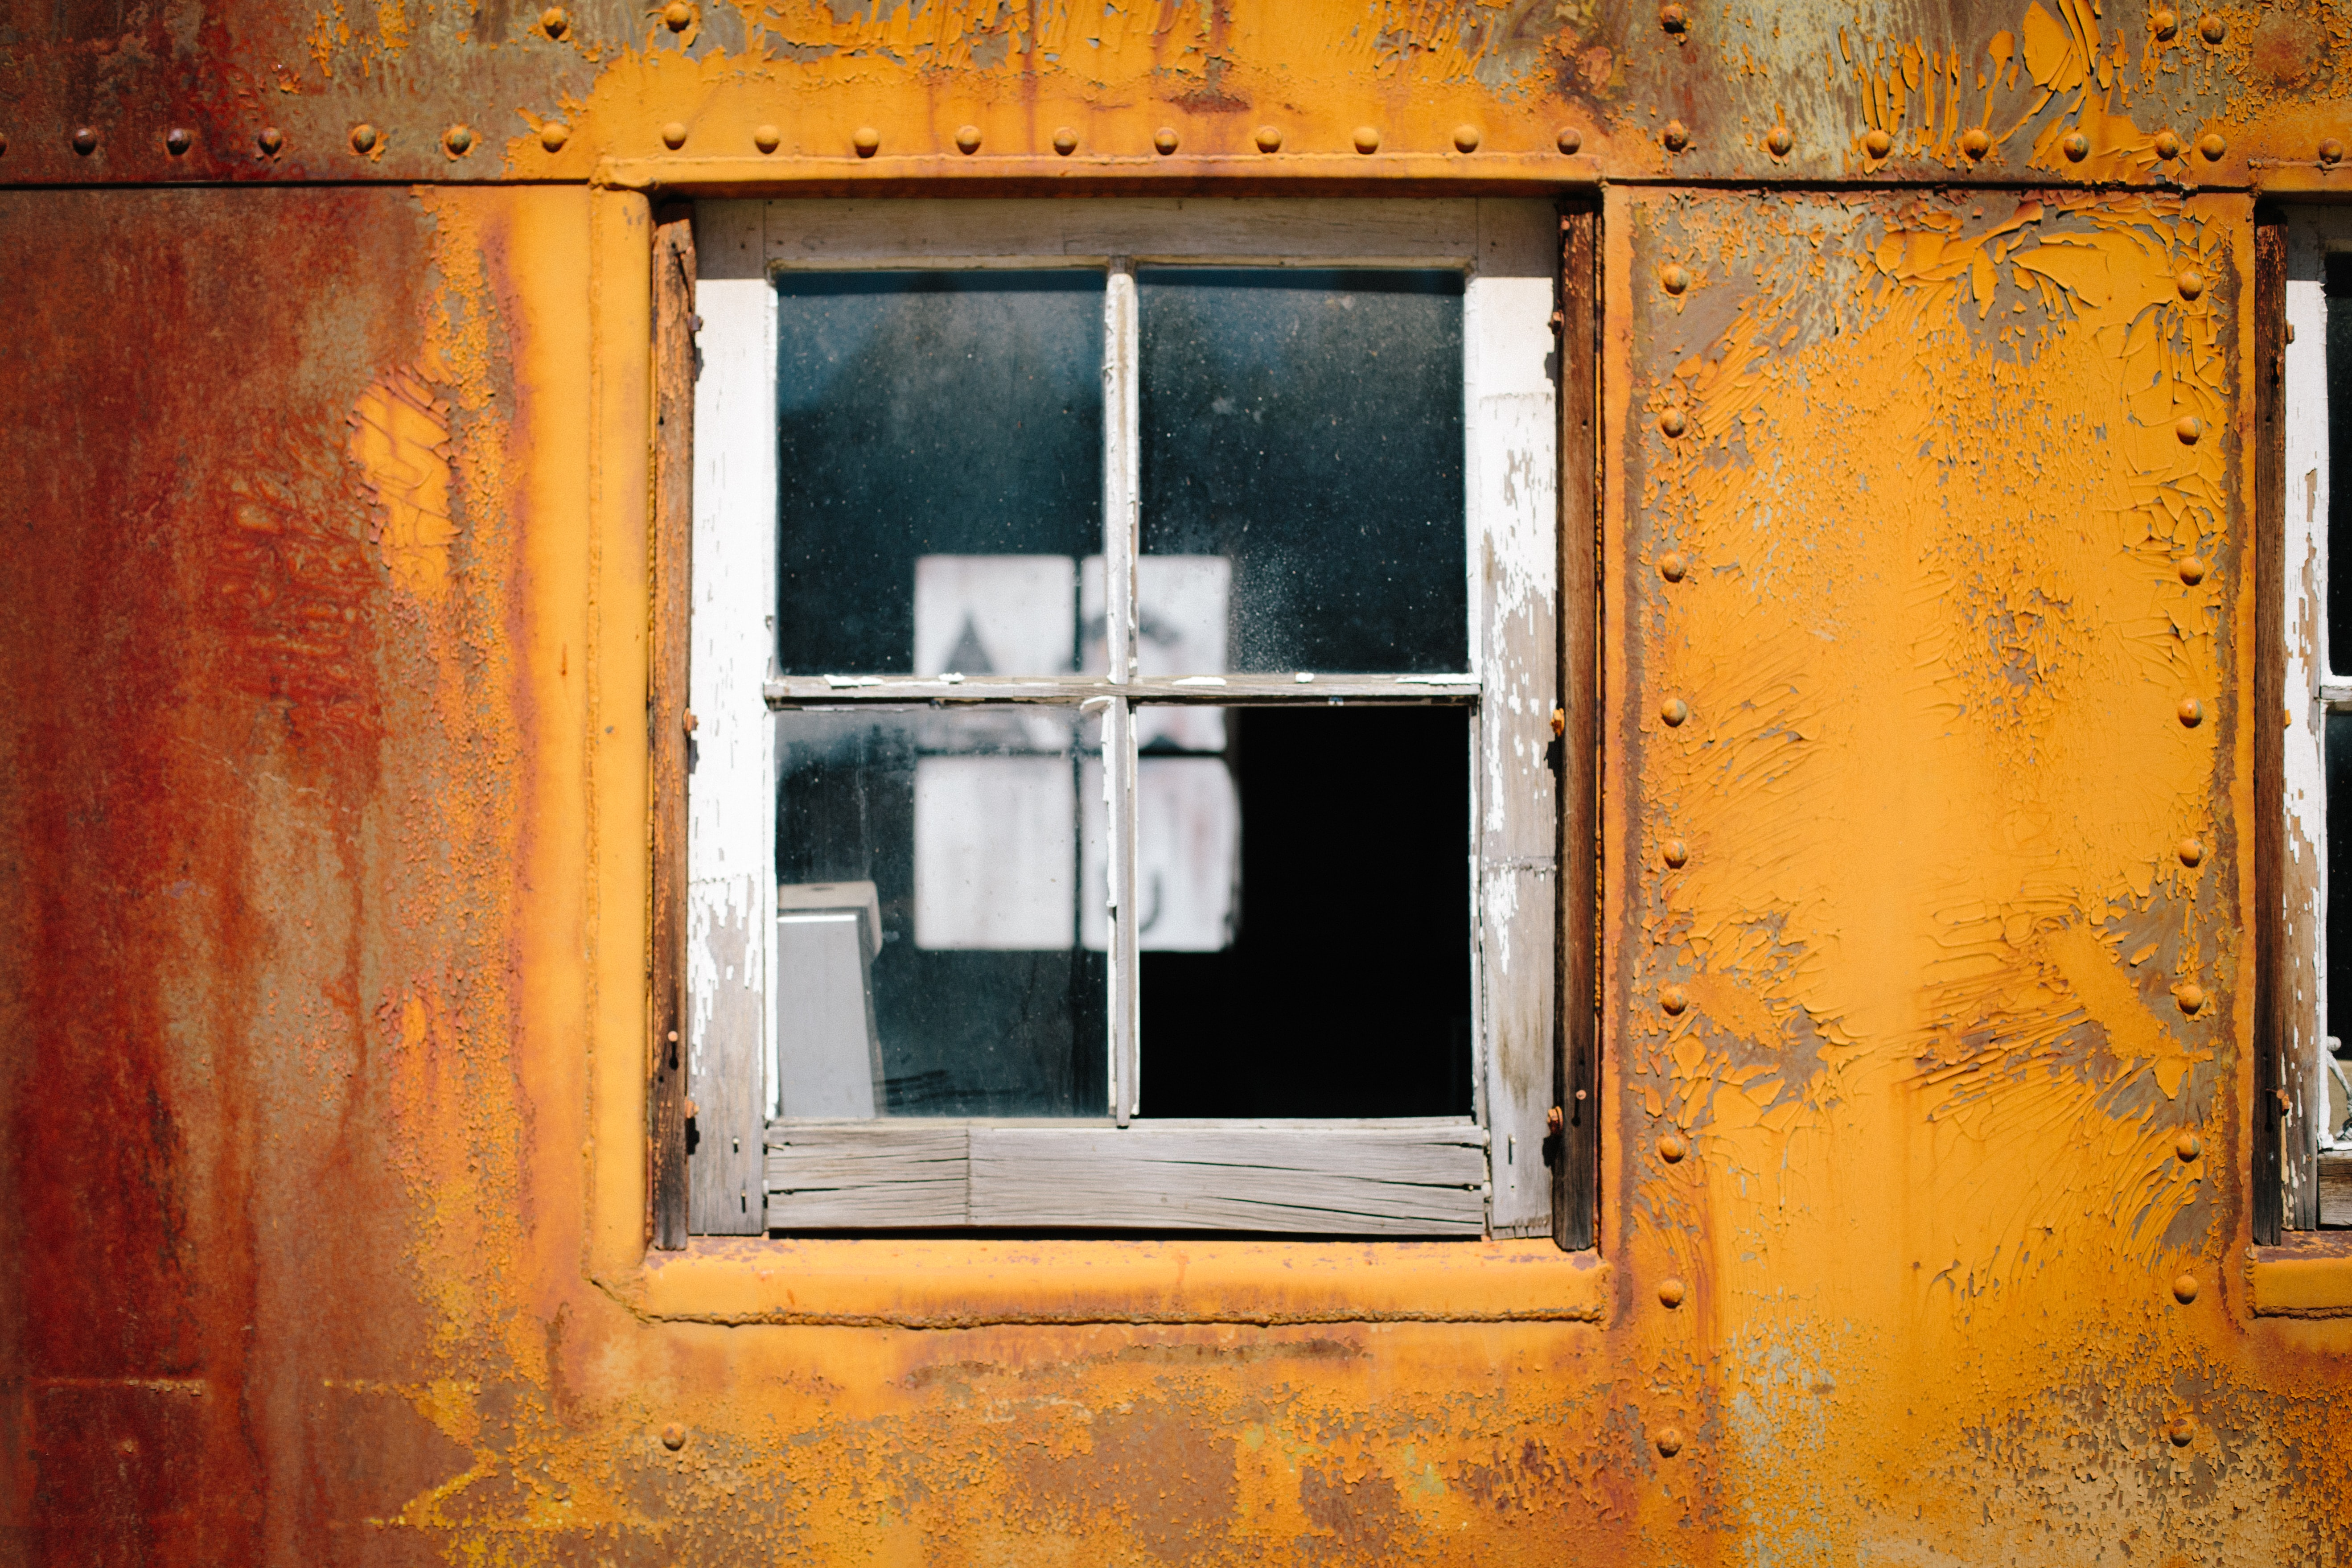 The close-up view of a glass window of a rusty and old metal building in western pacific railroad museum.